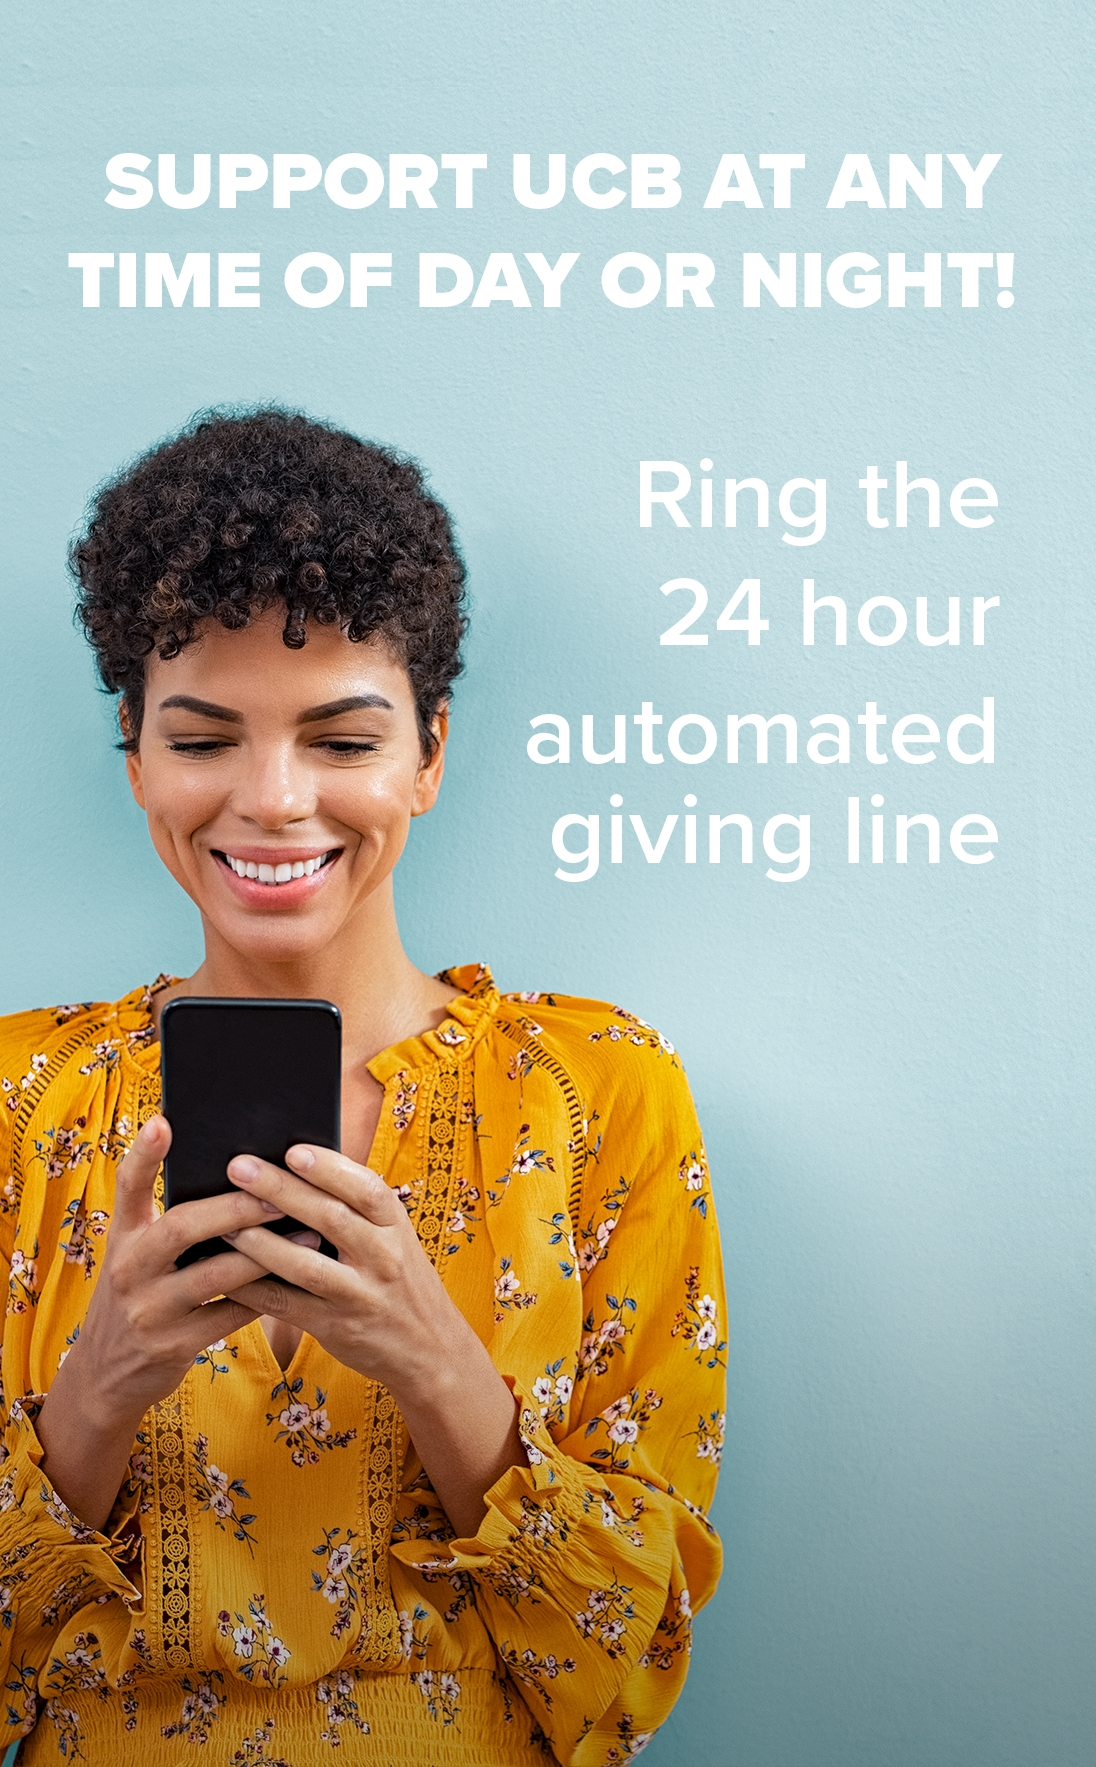 Ring our automated giving line 24 hours a day